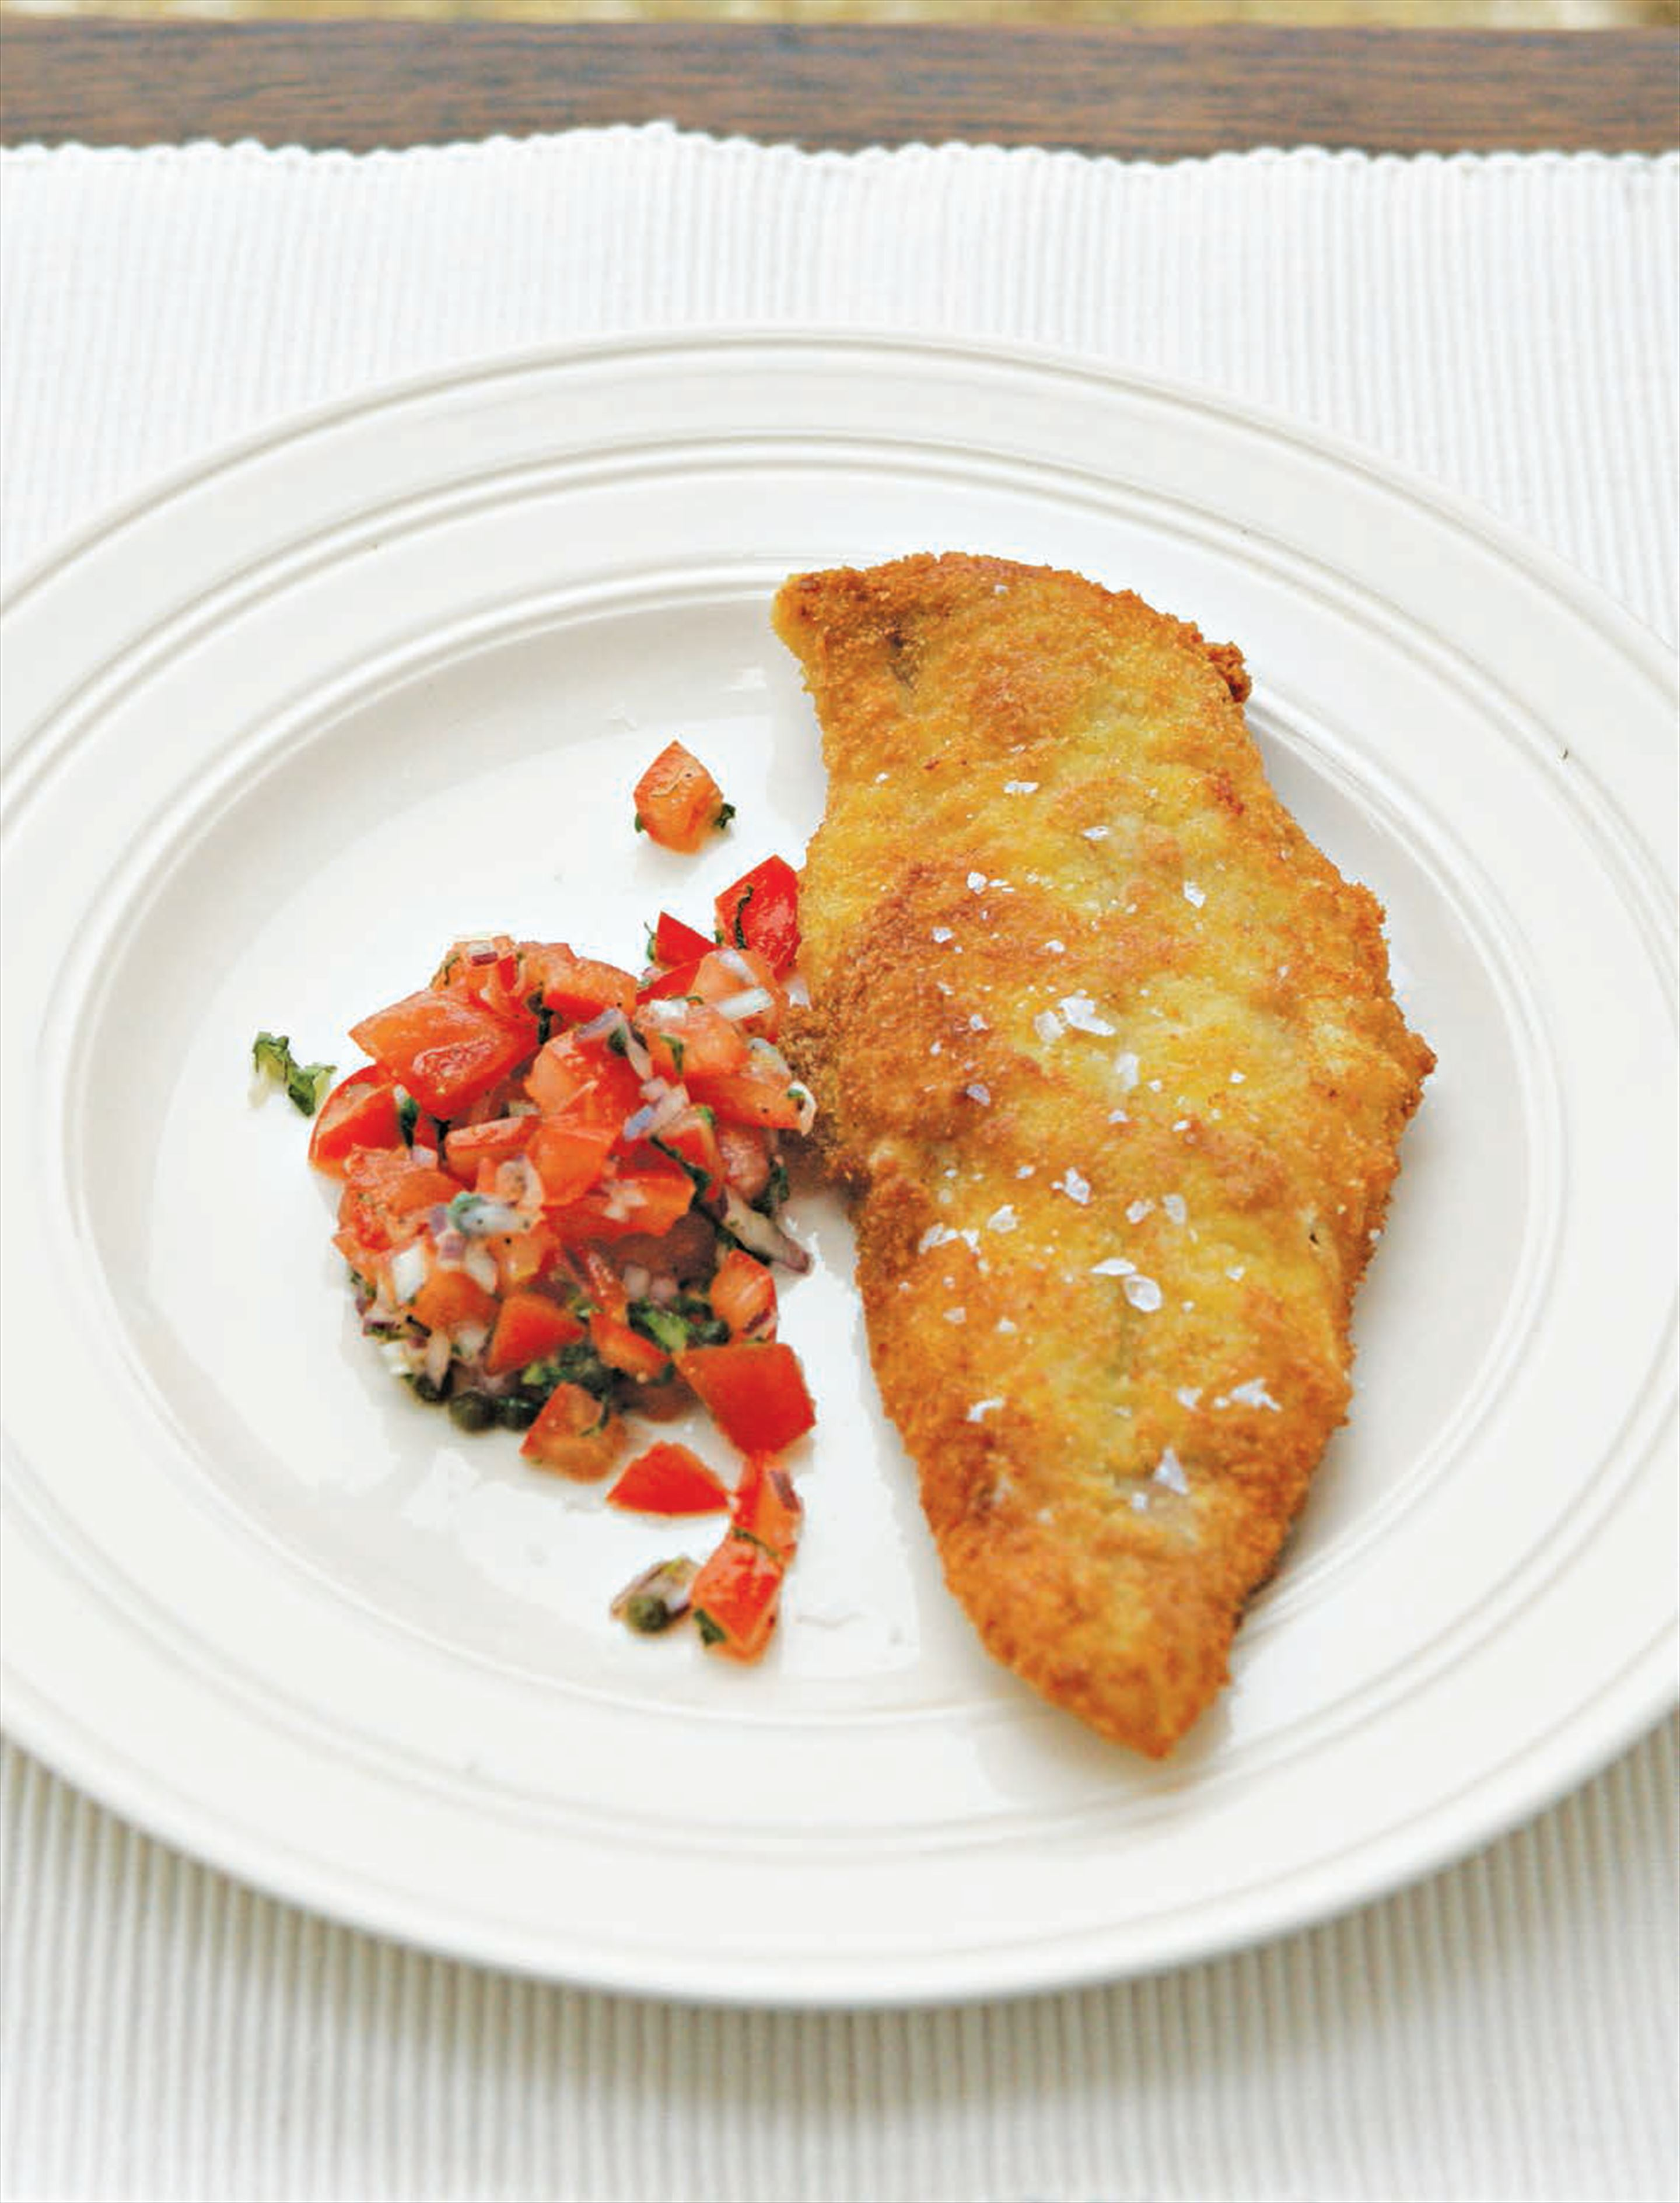 Breaded fish fillets with tomato salsa